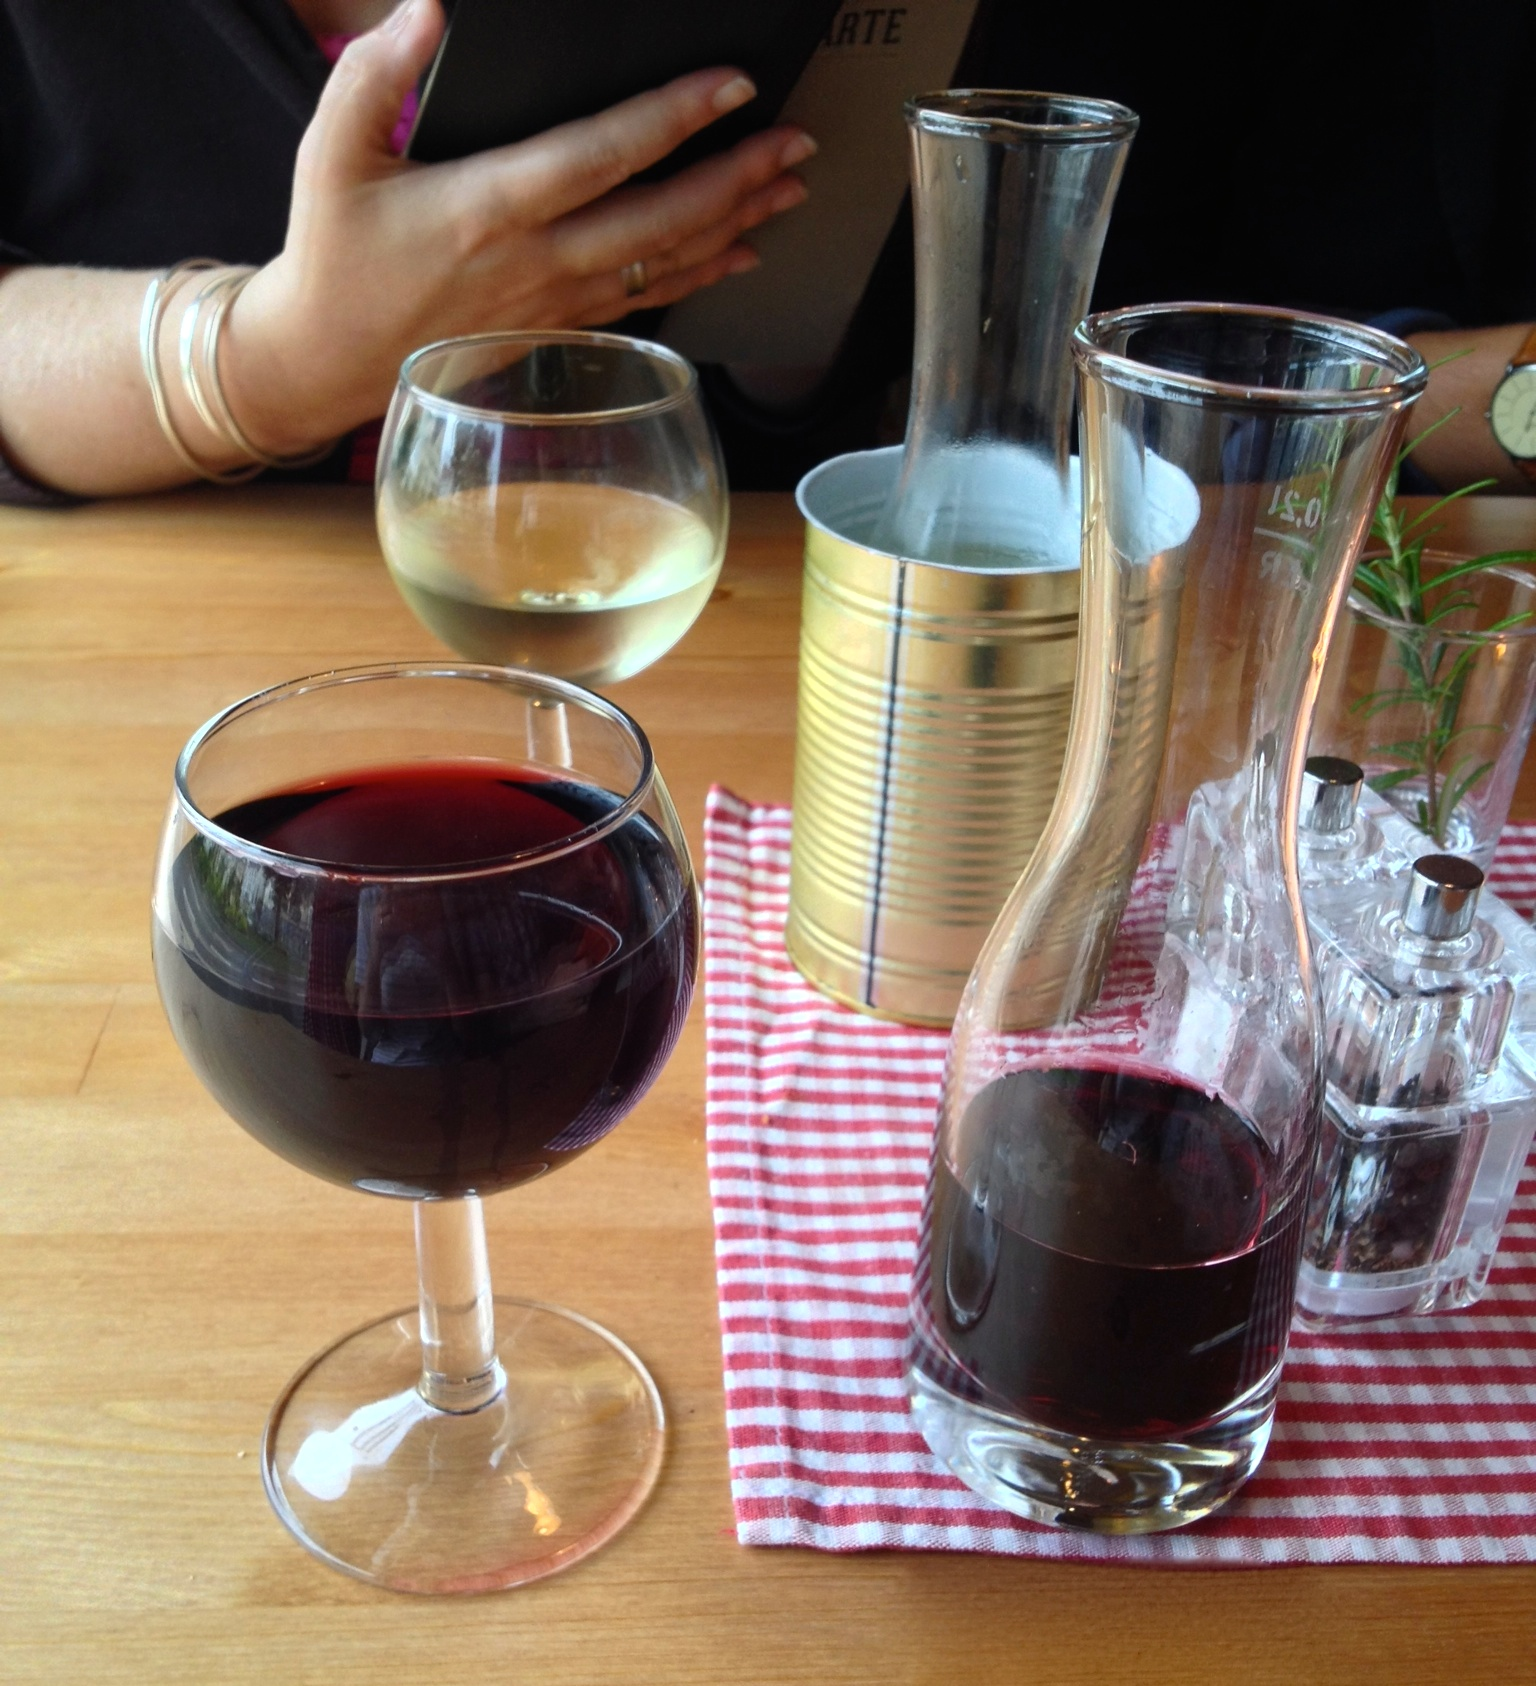 2012 Luna Lunera tempranillo (and a very cool serving style)